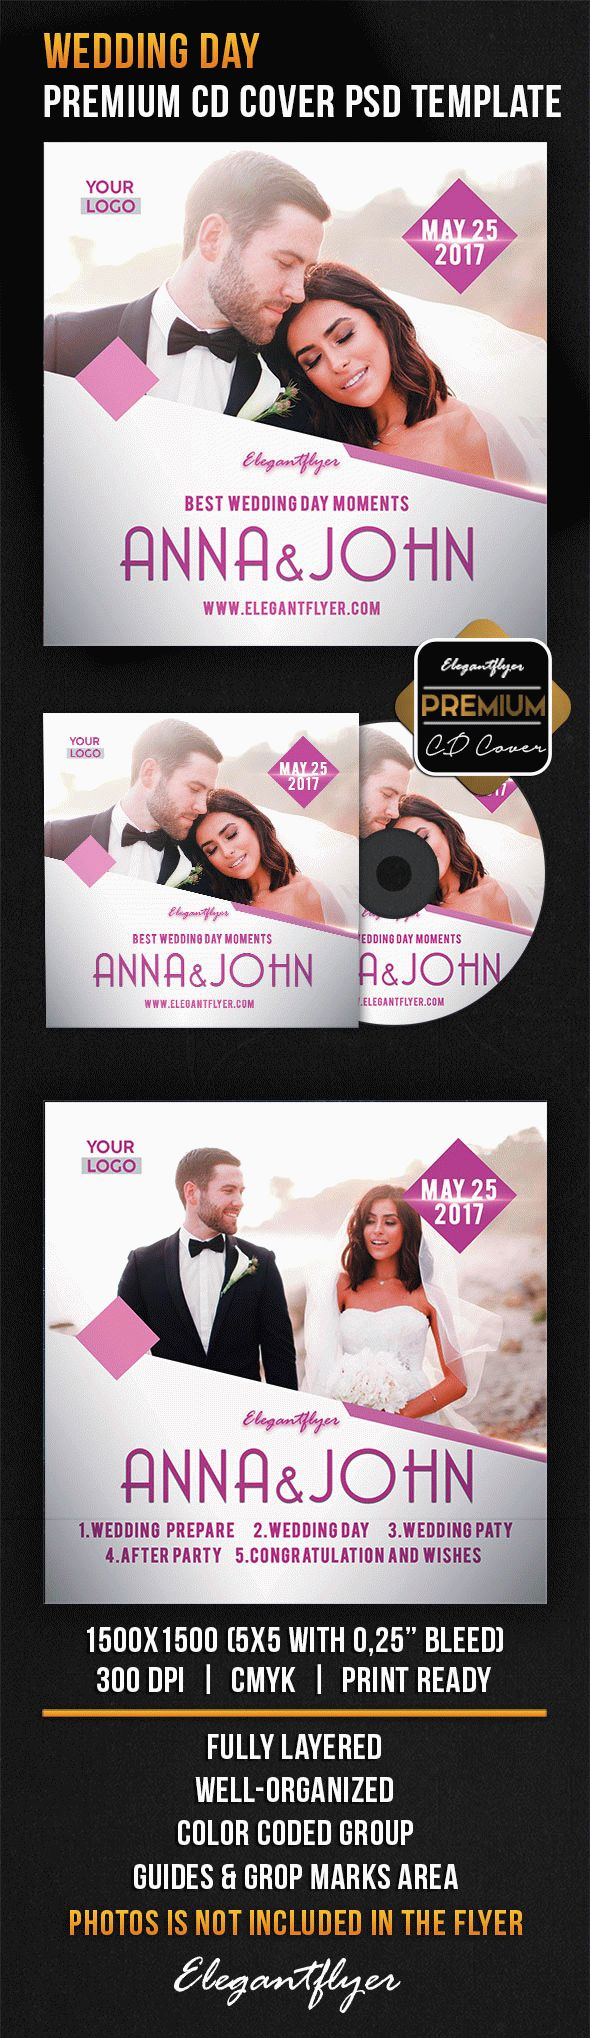 Wedding Day CD Cover in PSD